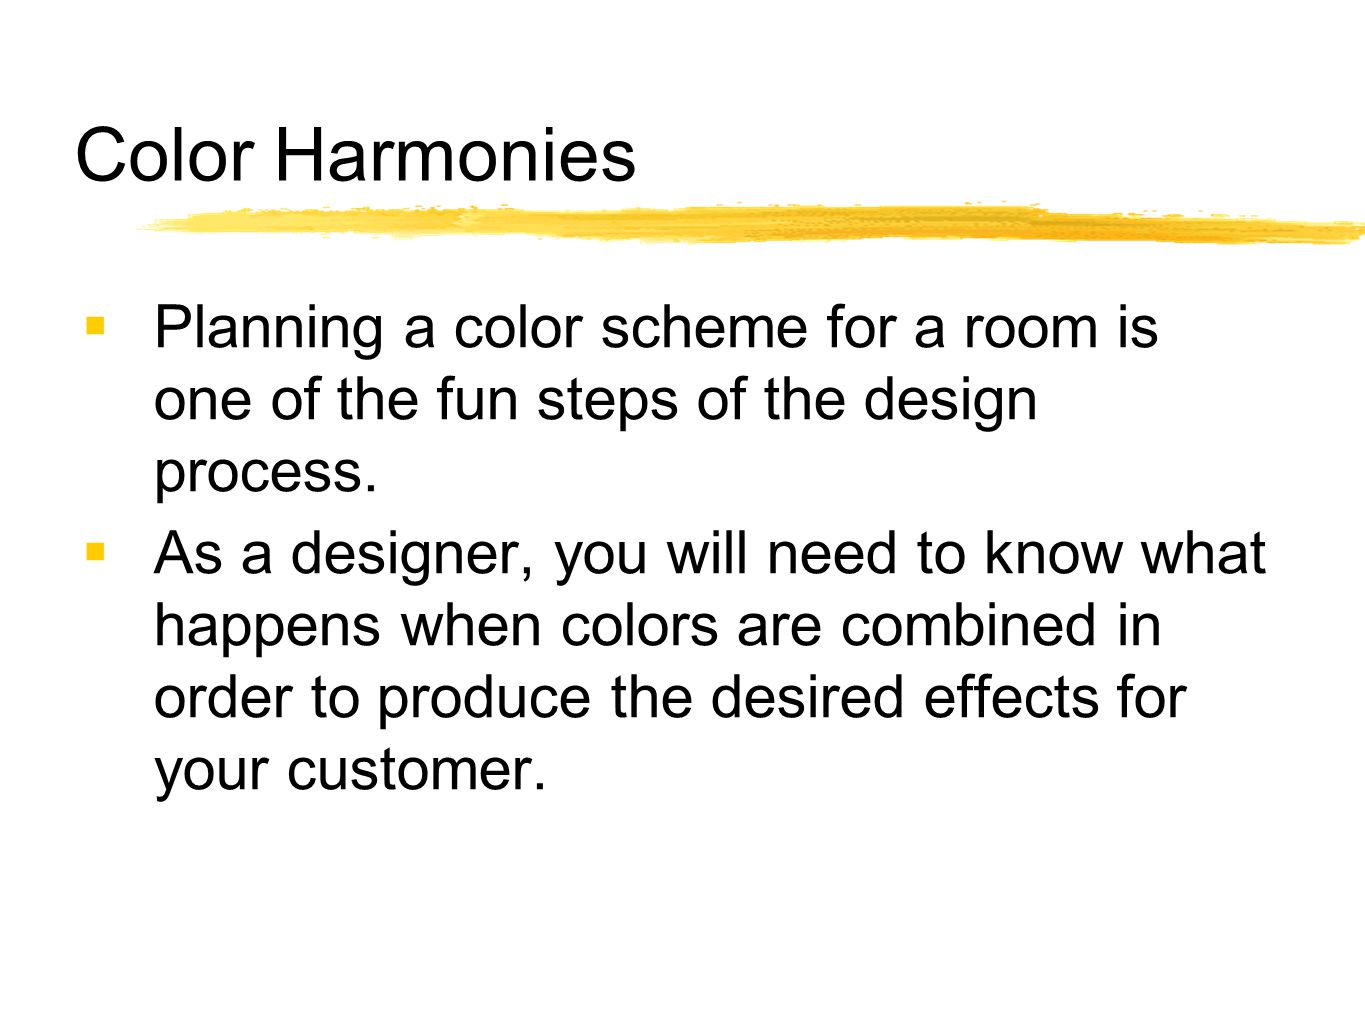 Color Harmonies Planning a color scheme for a room is one of the fun steps of the design process.